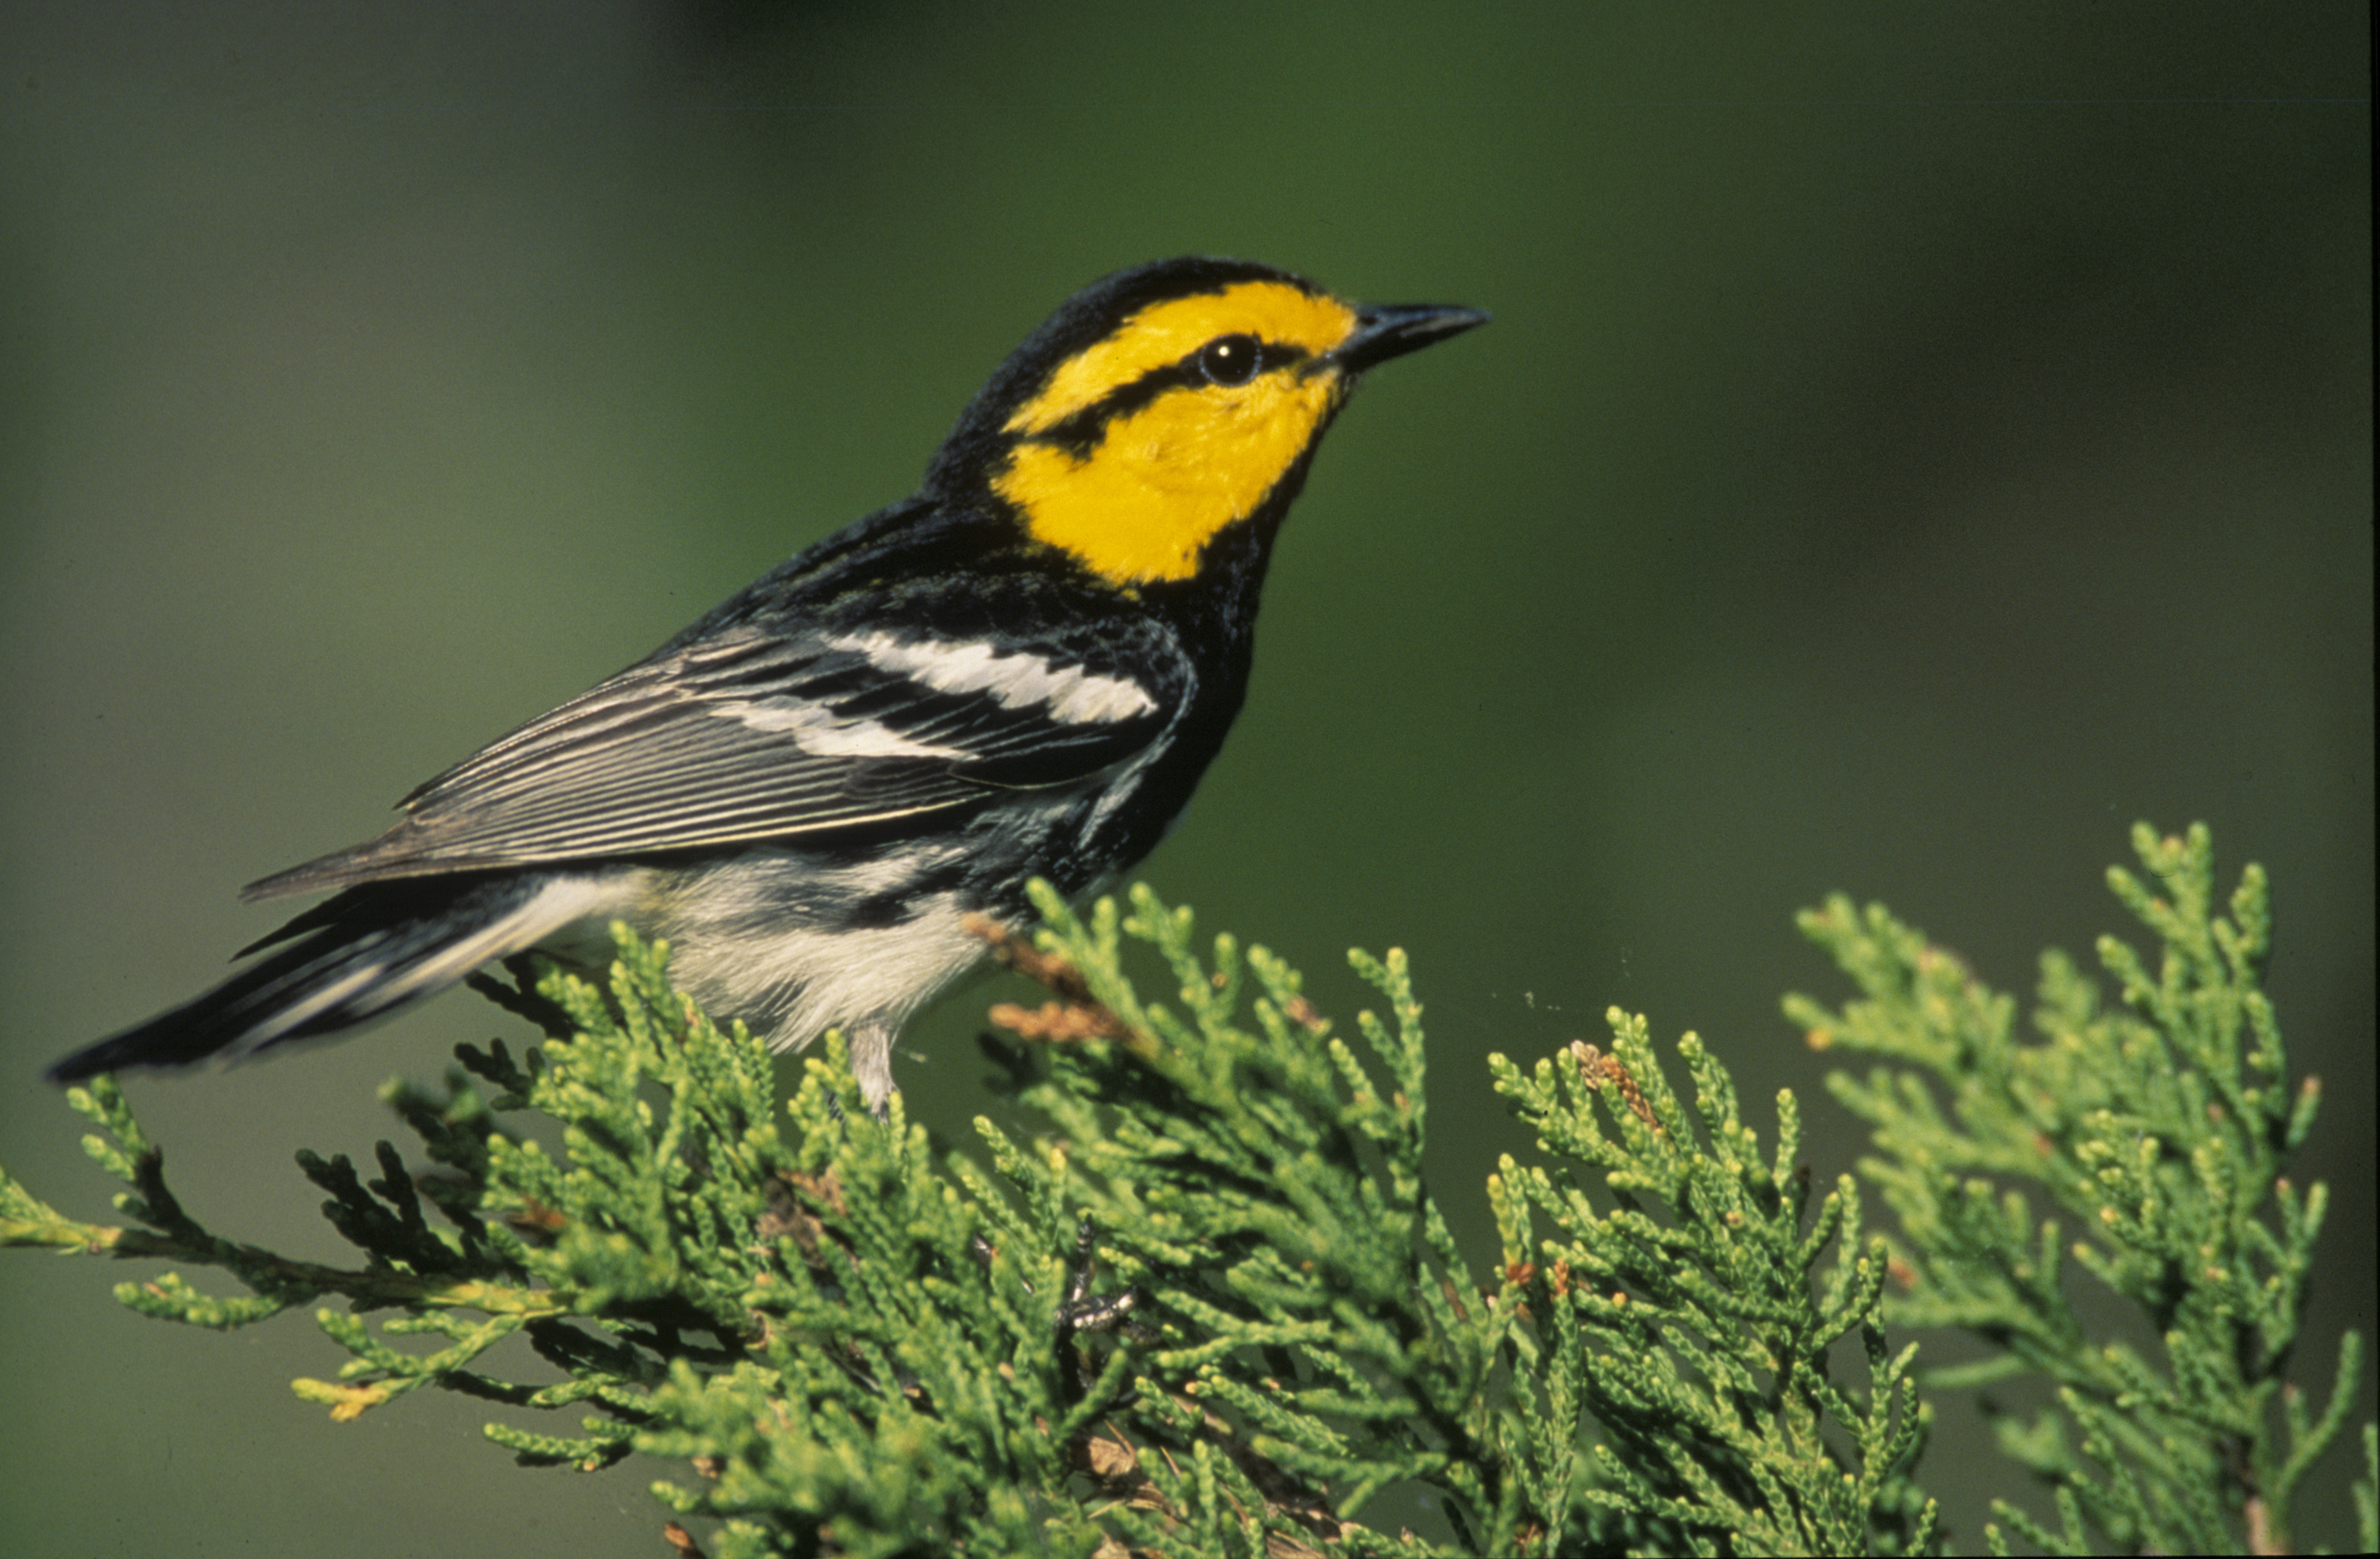 Keep Texas Wild: Protect Golden-cheeked Warbler